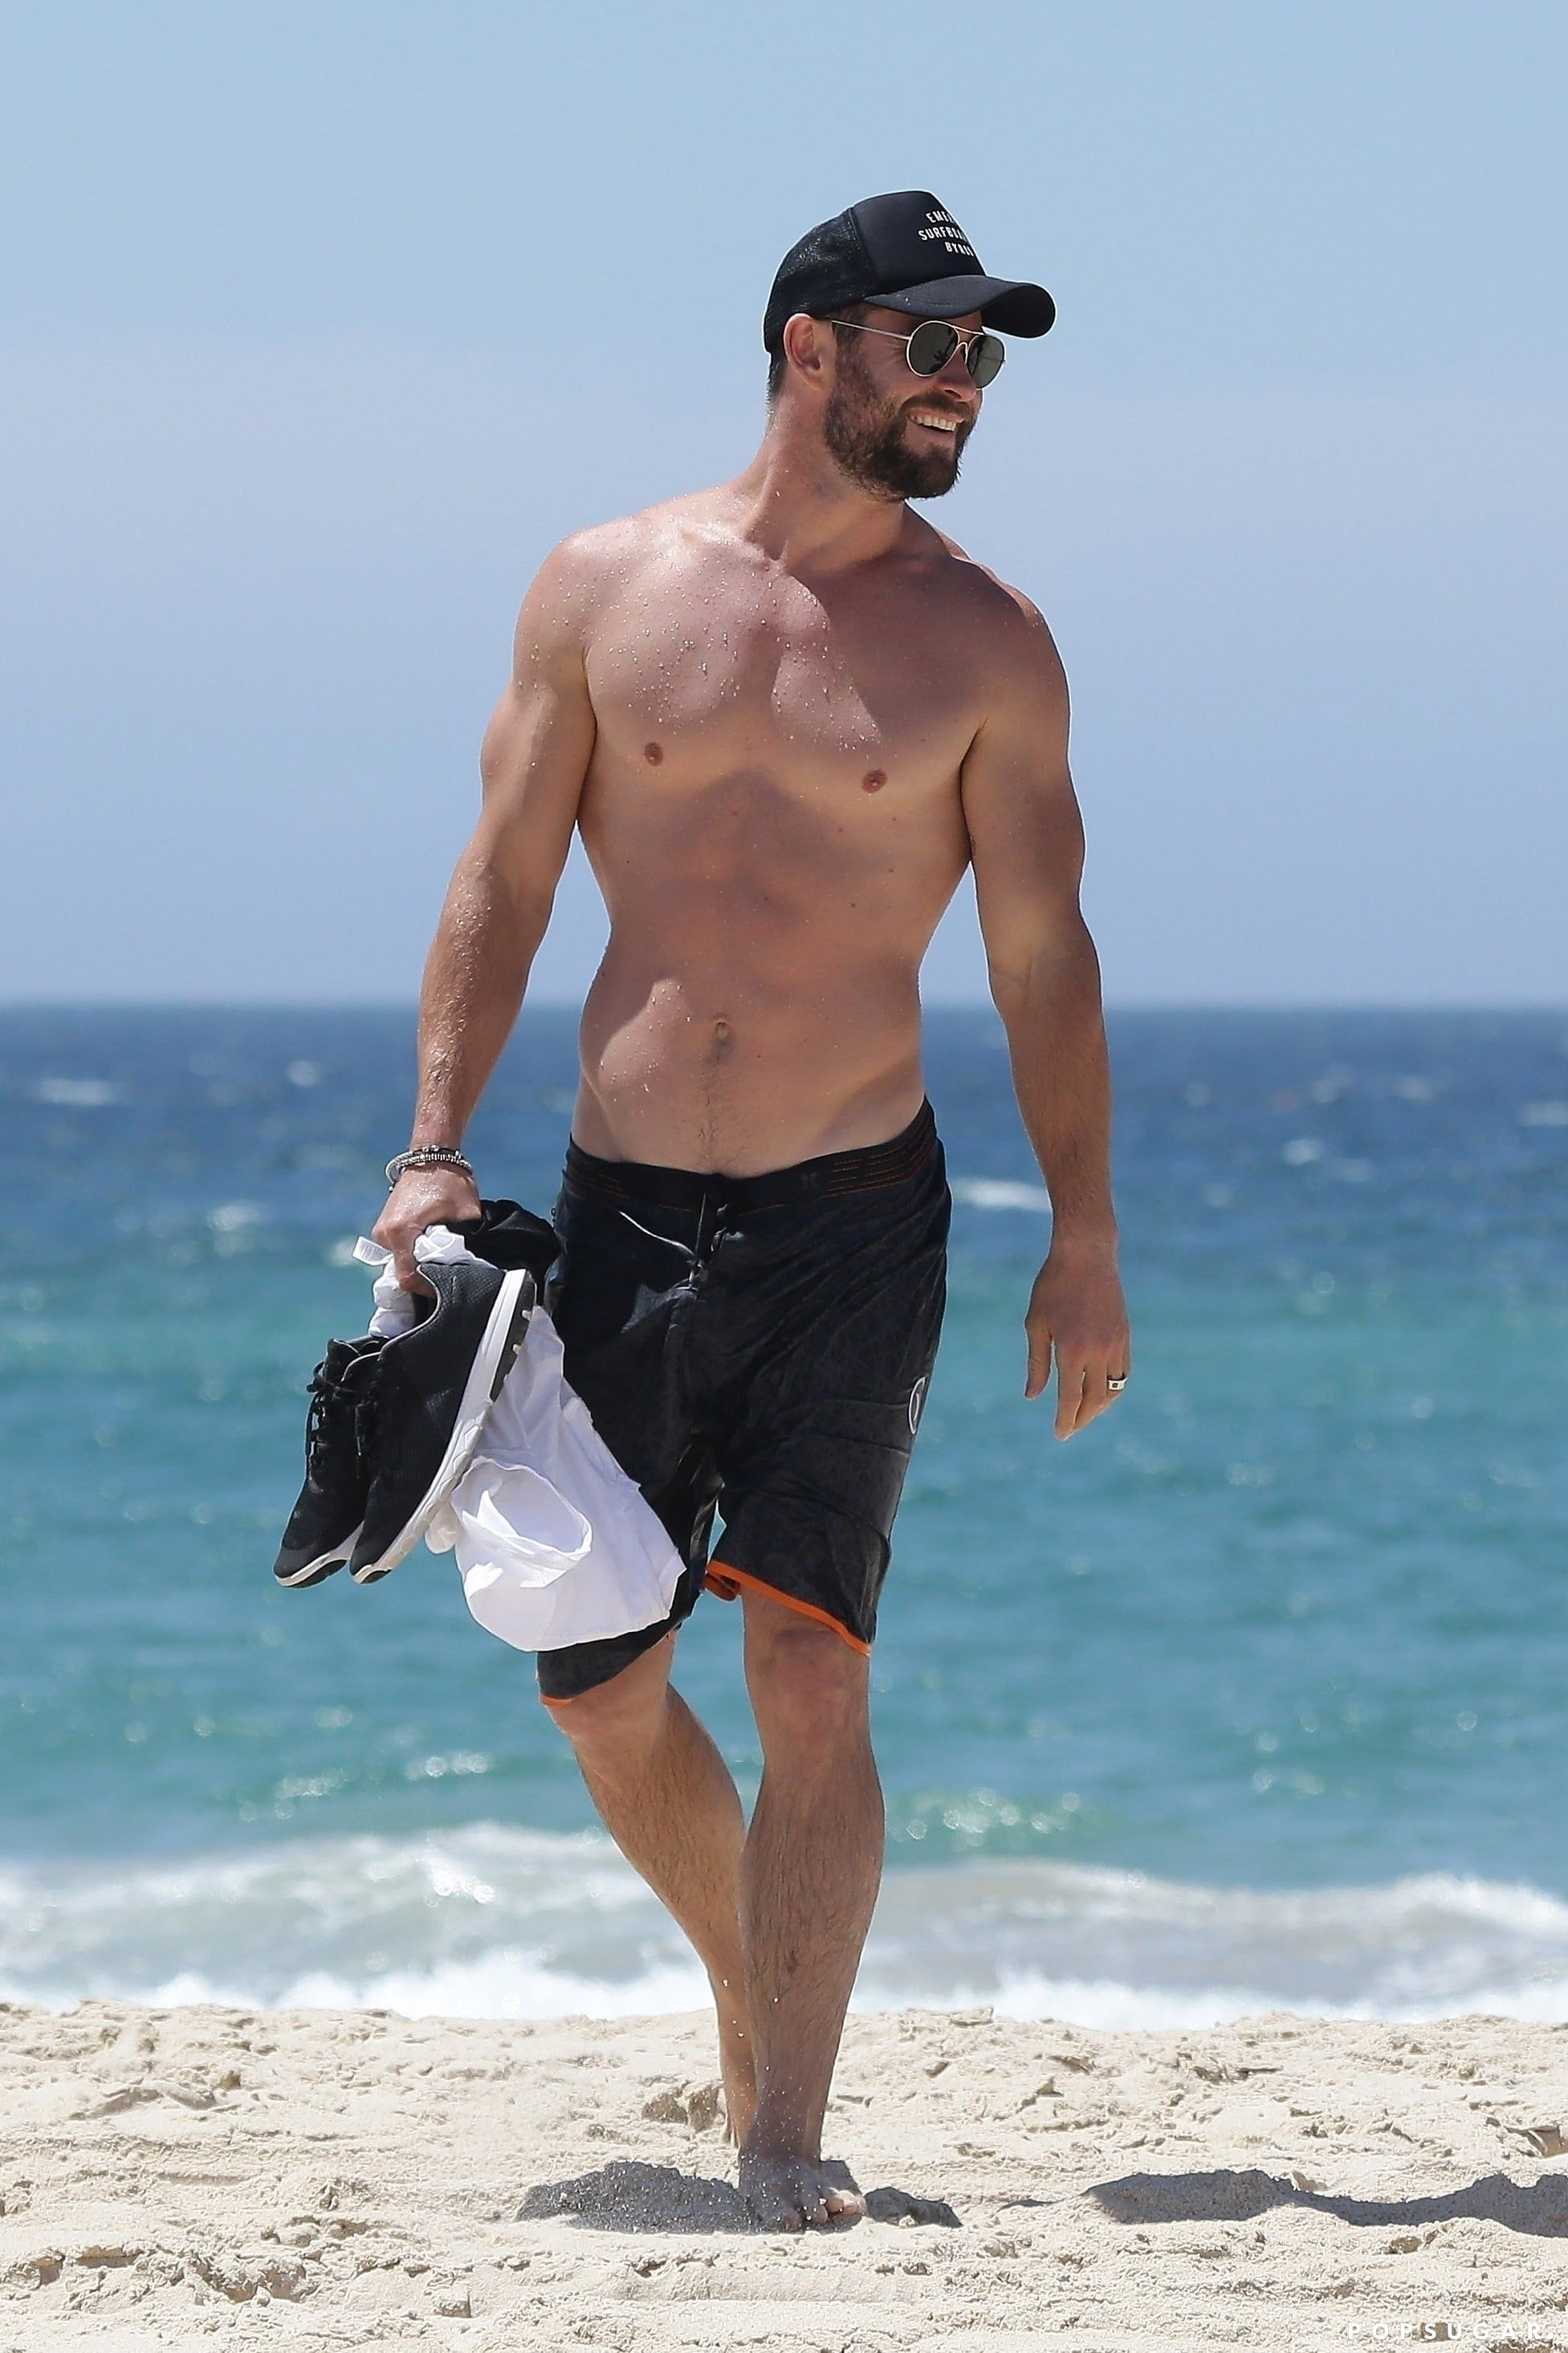 21 Chris Hemsworth Shirtless Photos That Will Do Unspeakable Things to Your Body